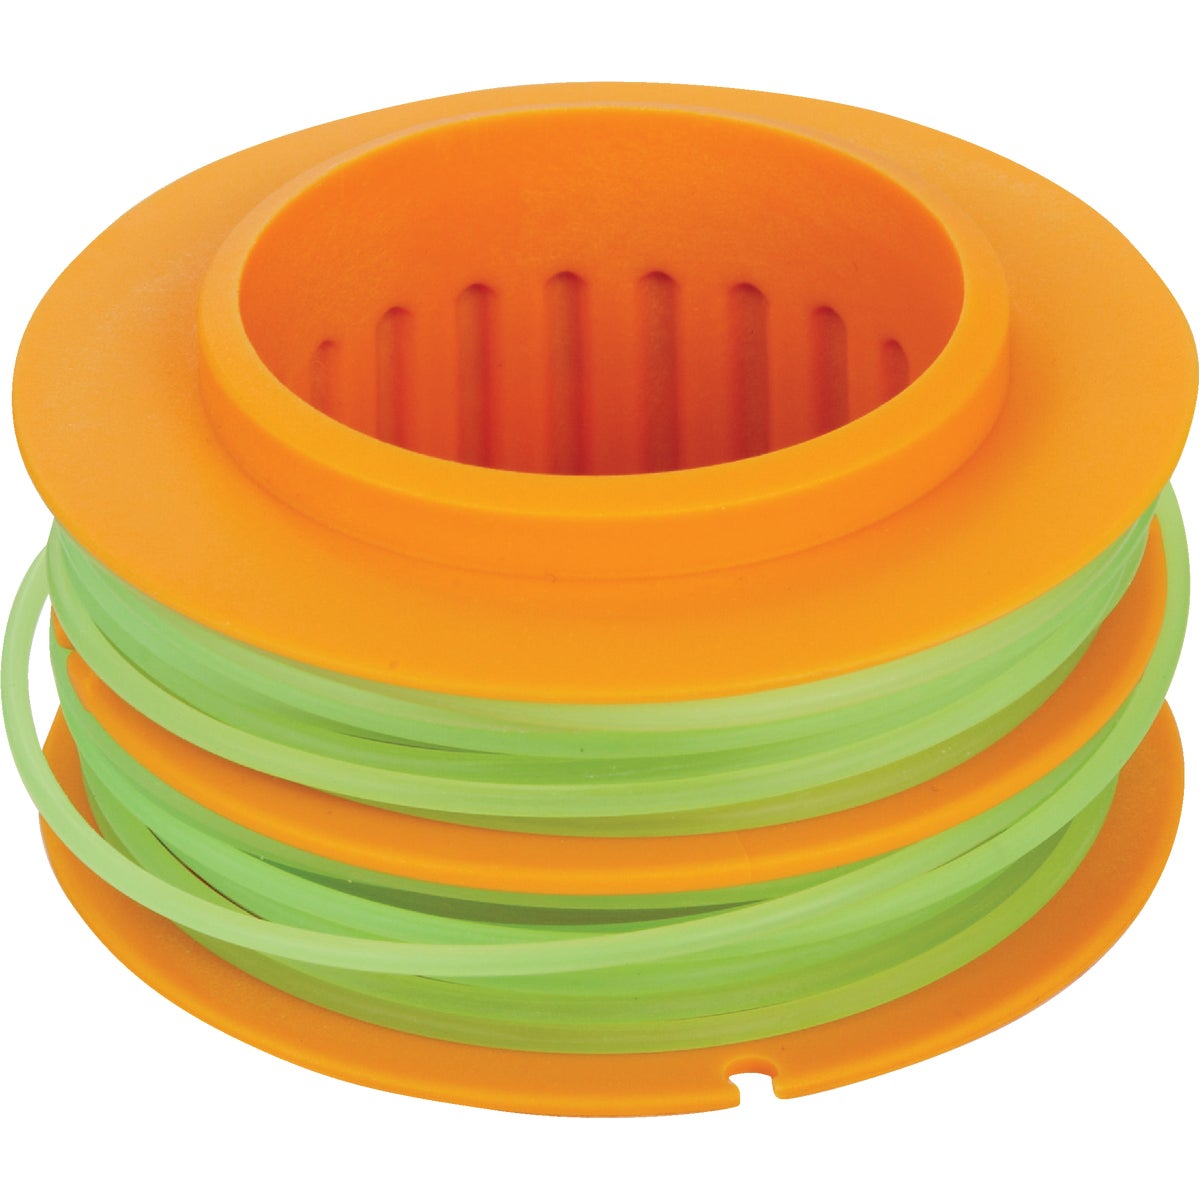 .080 X 25' TRIMMER SPOOL - 952711636 by Poulan